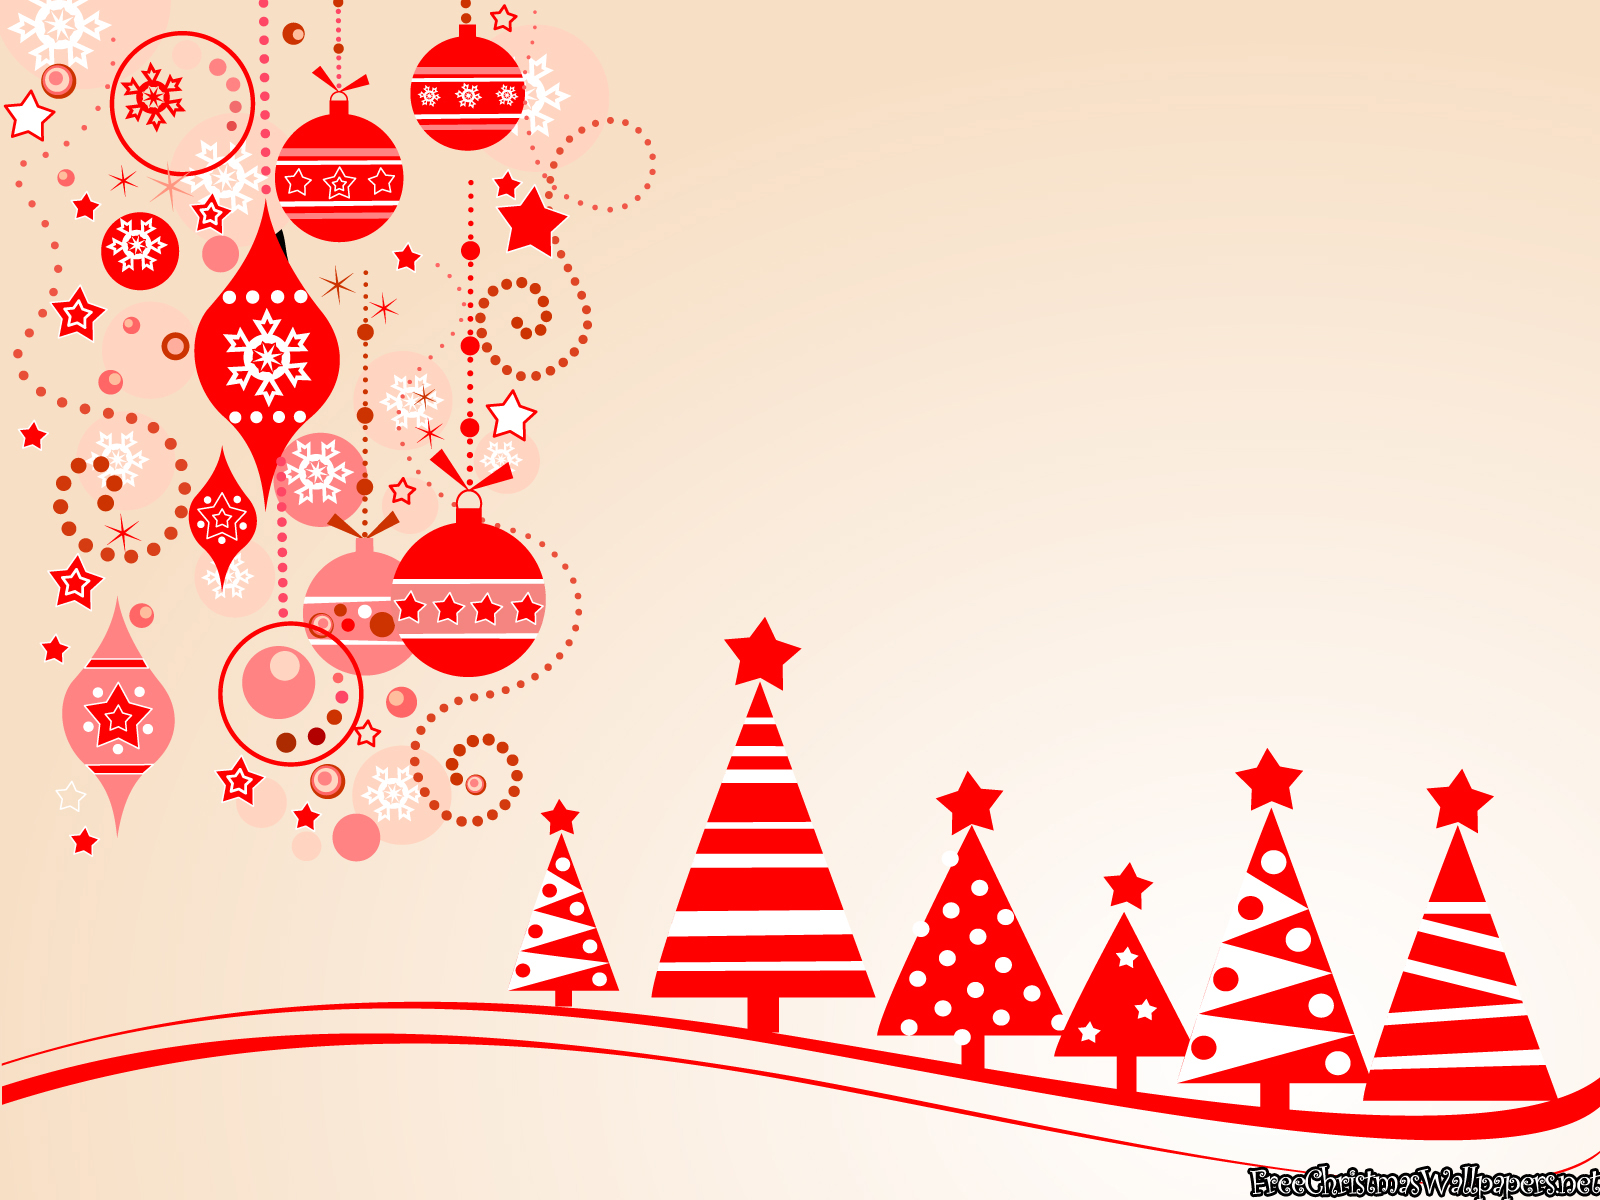 Christmas Trees Background Clipart.Free Christmas Clip Art Backgrounds Look At Clip Art